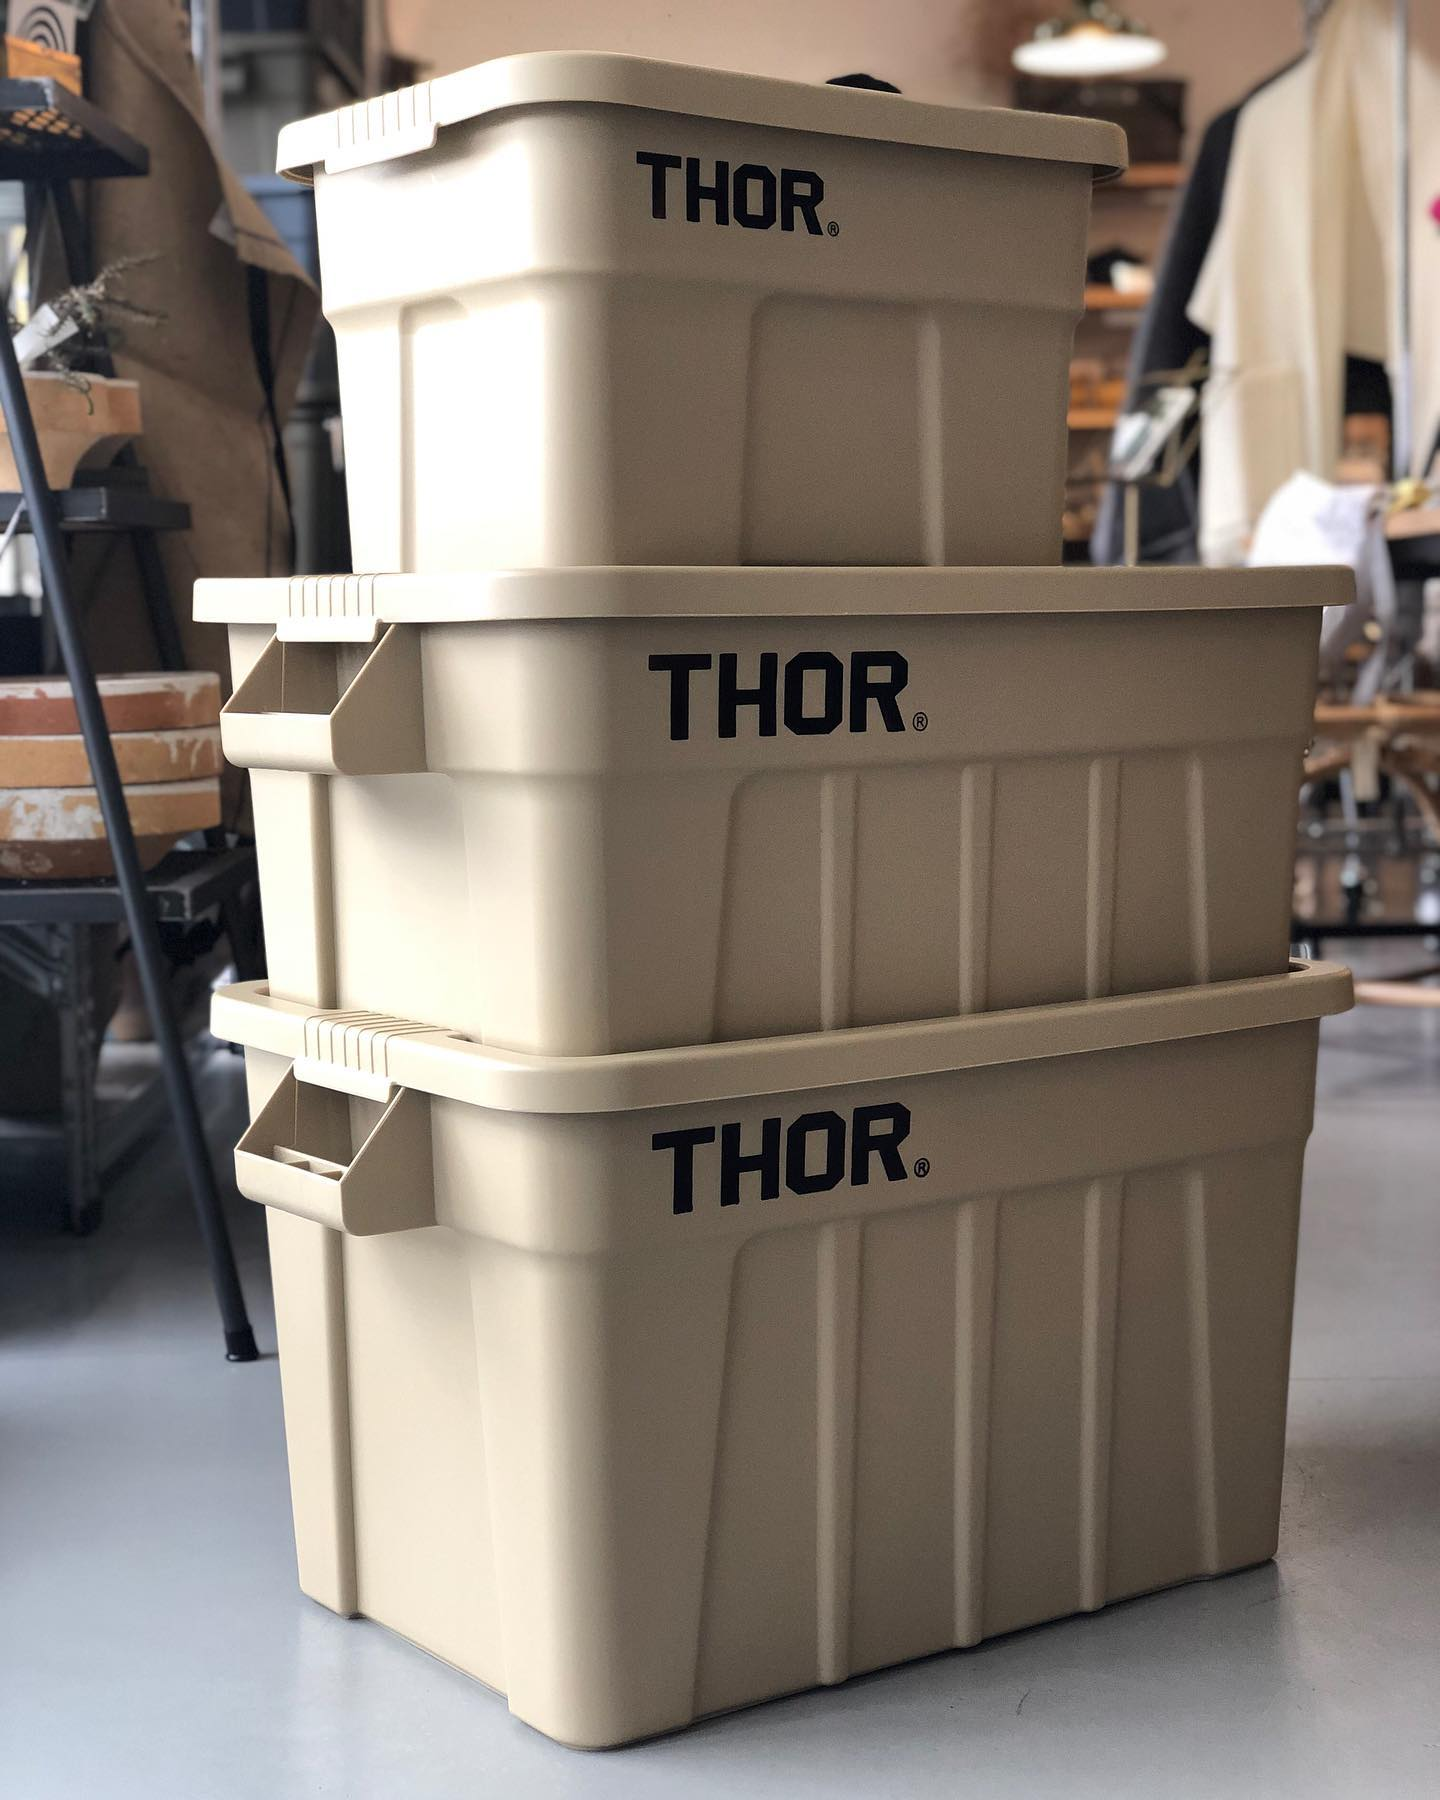 THOR / Large Totes With Lid